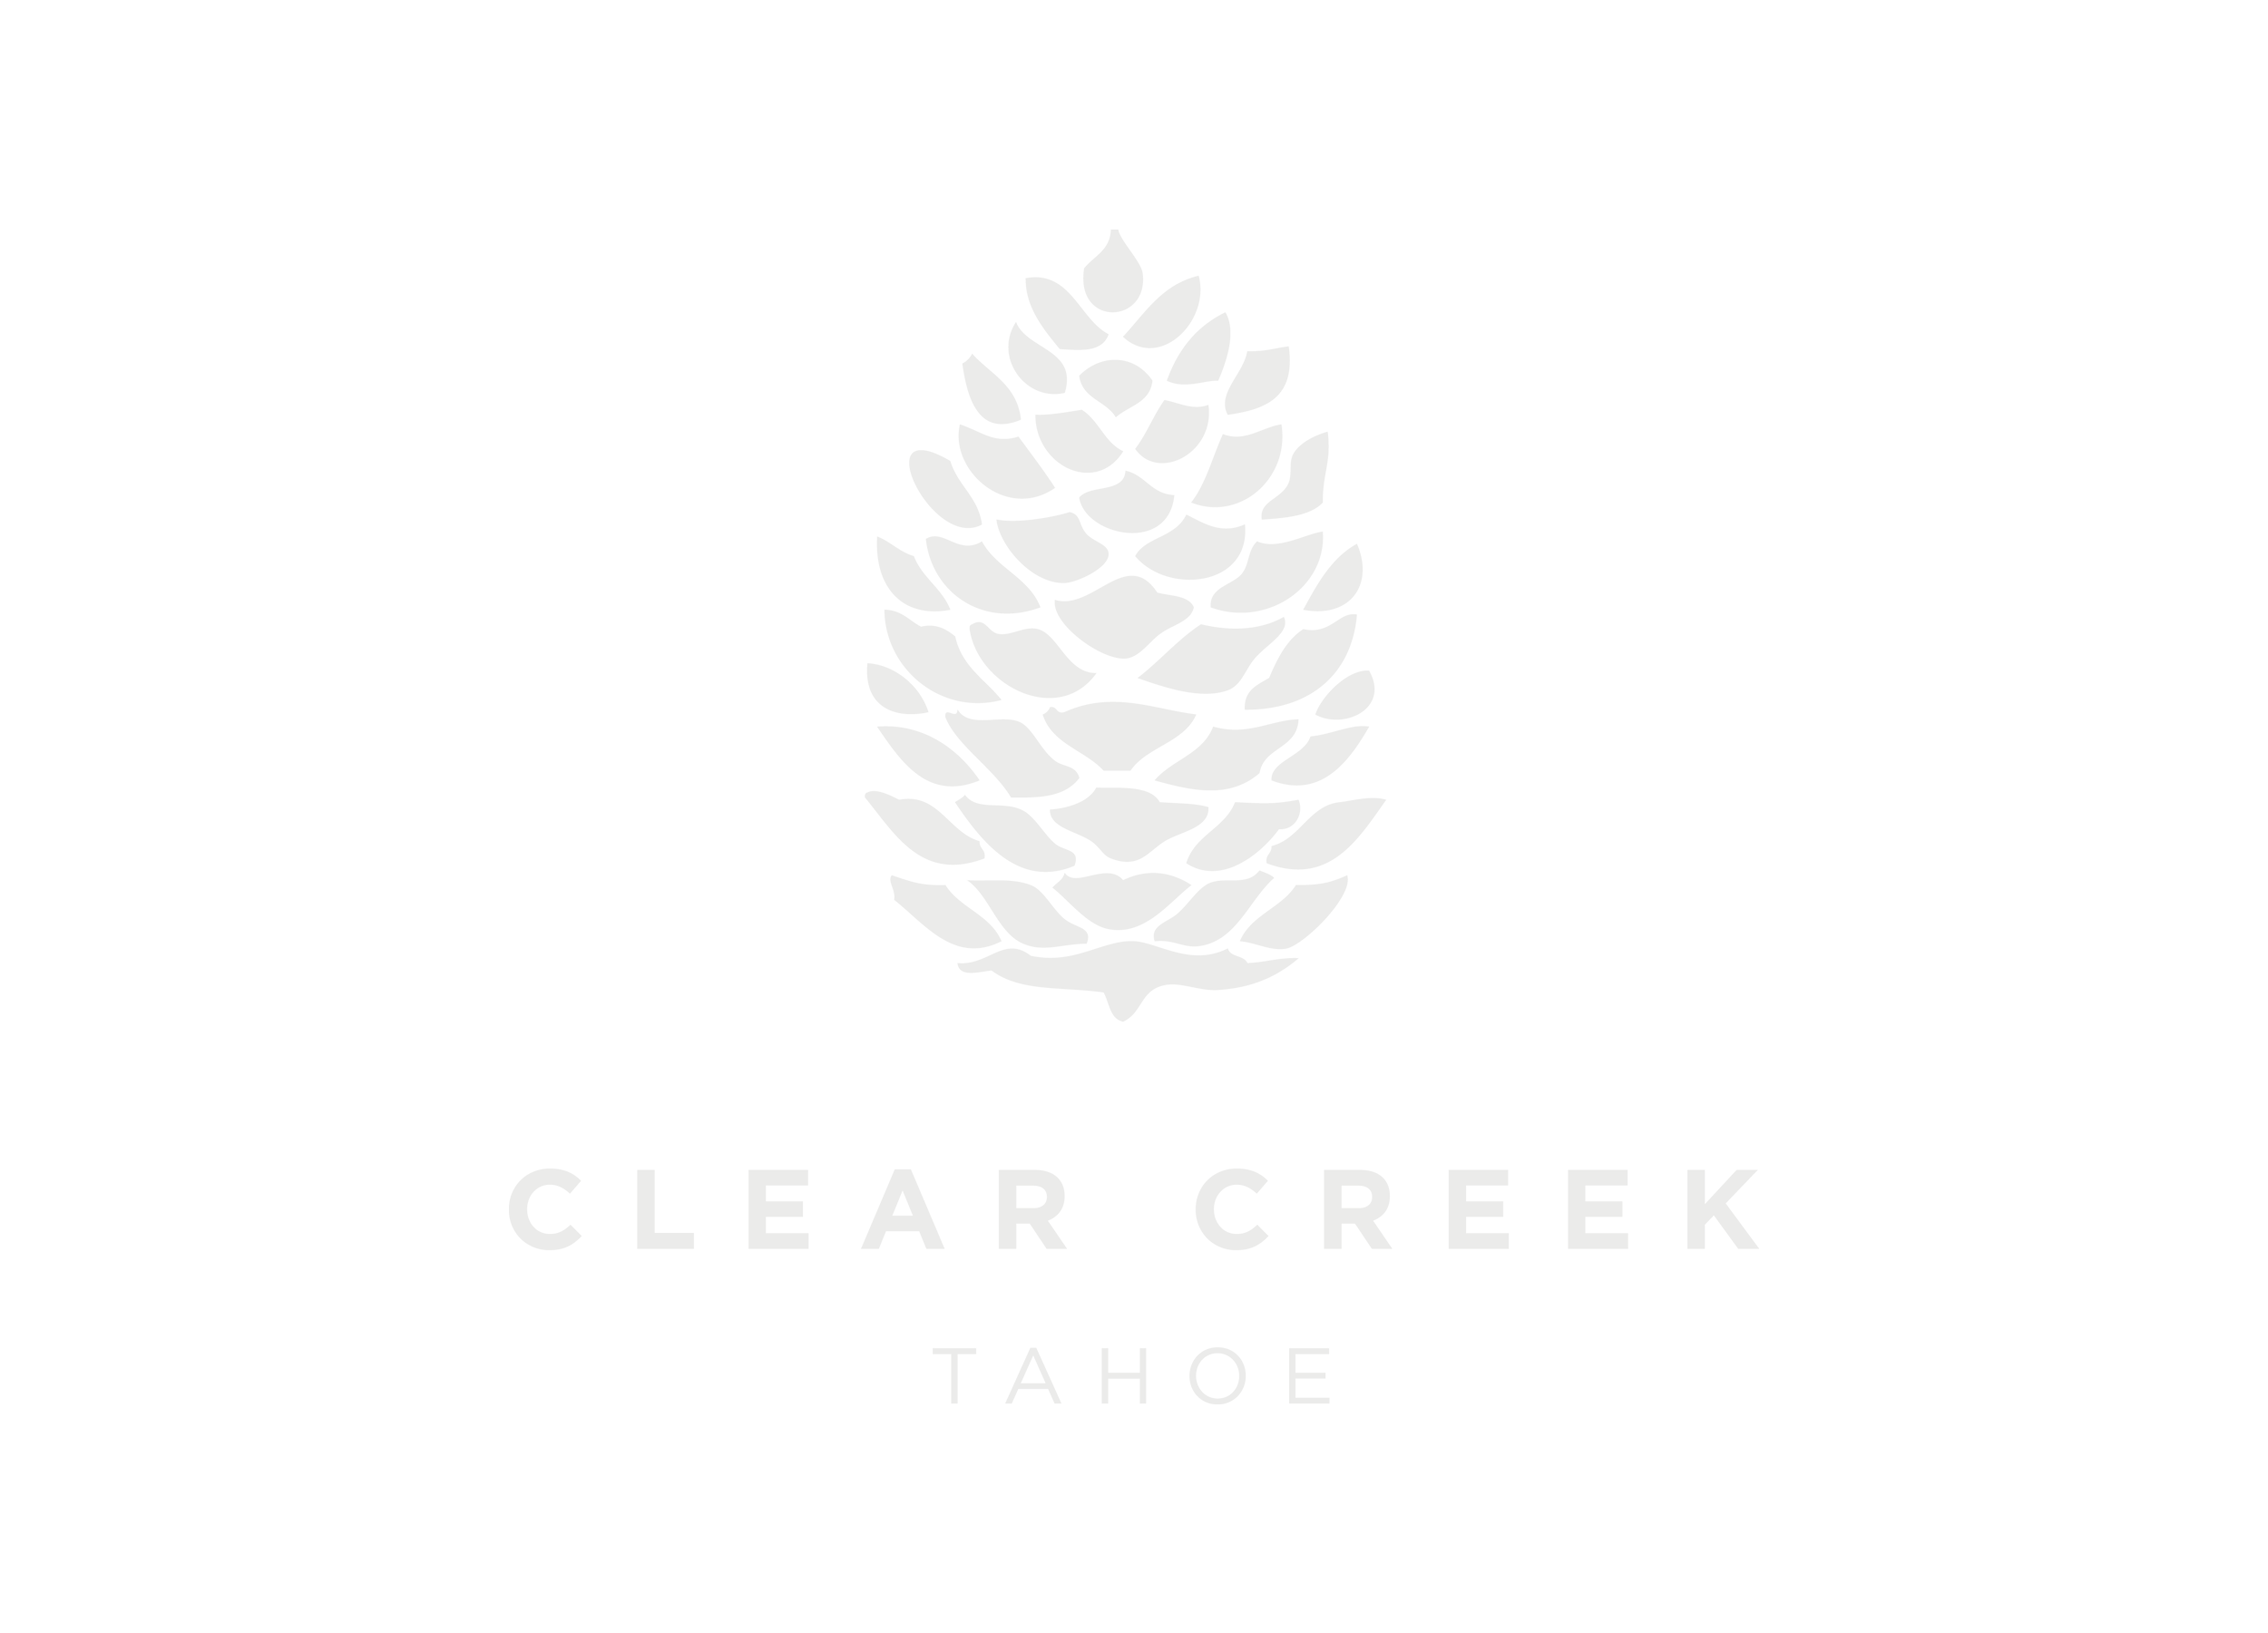 ClearCreek-logo.png